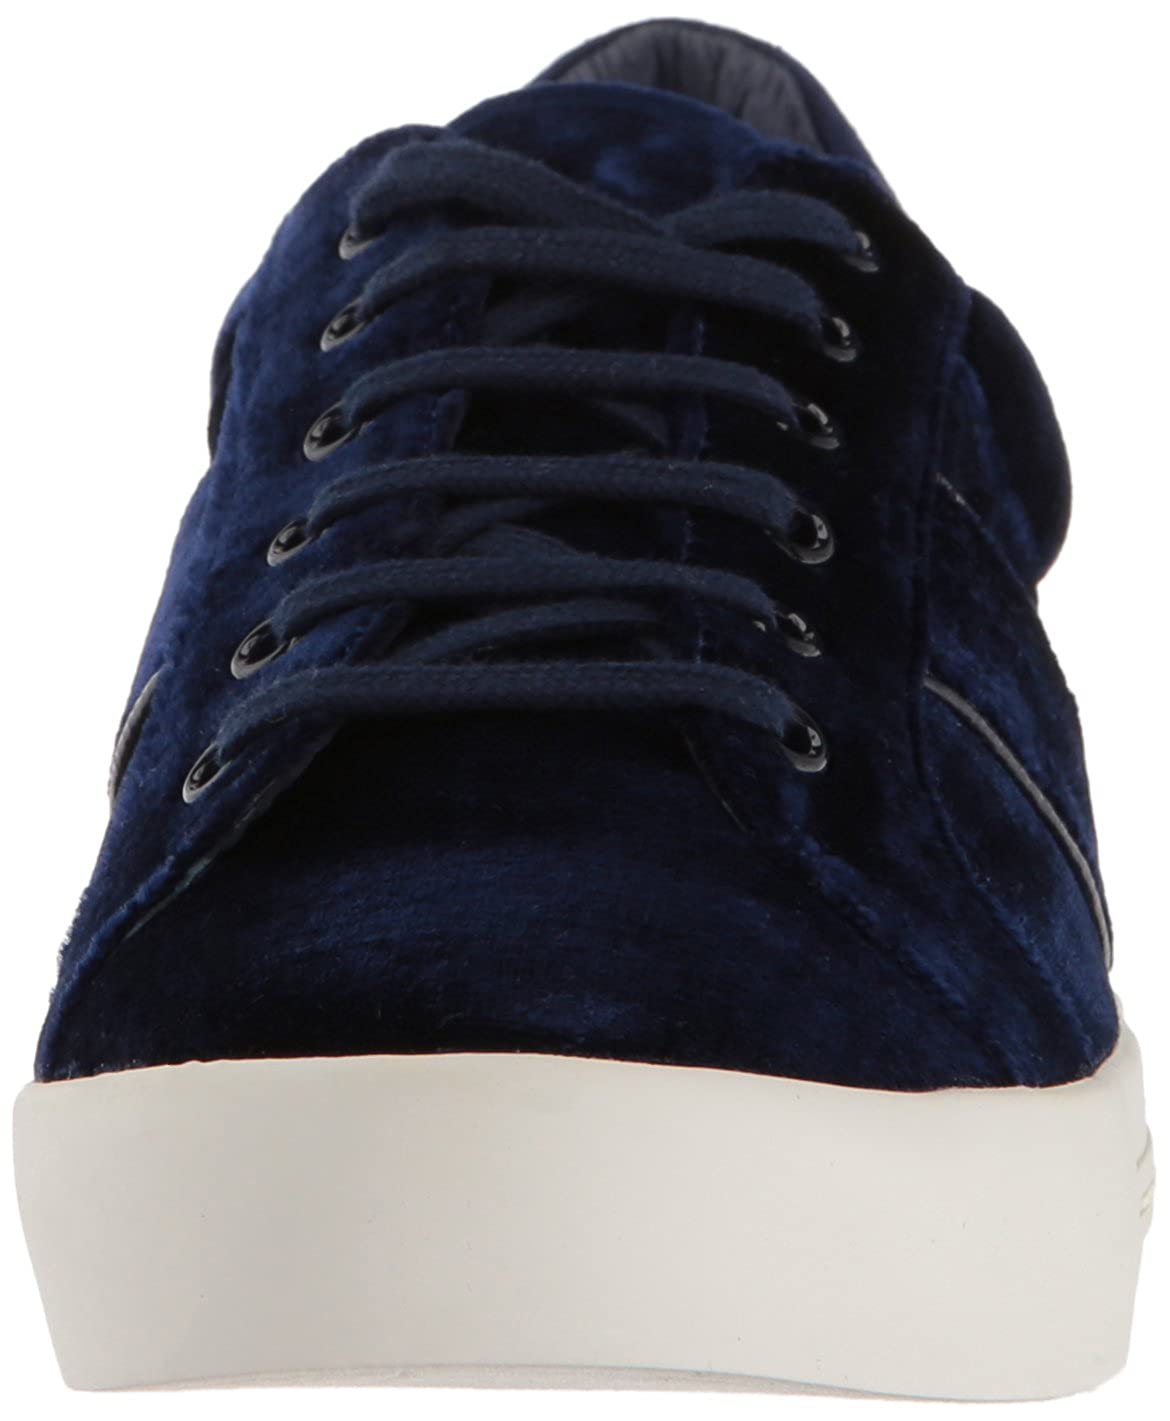 Joie Fashion Frauen Fashion Joie Sneaker Navy 9e6dc7